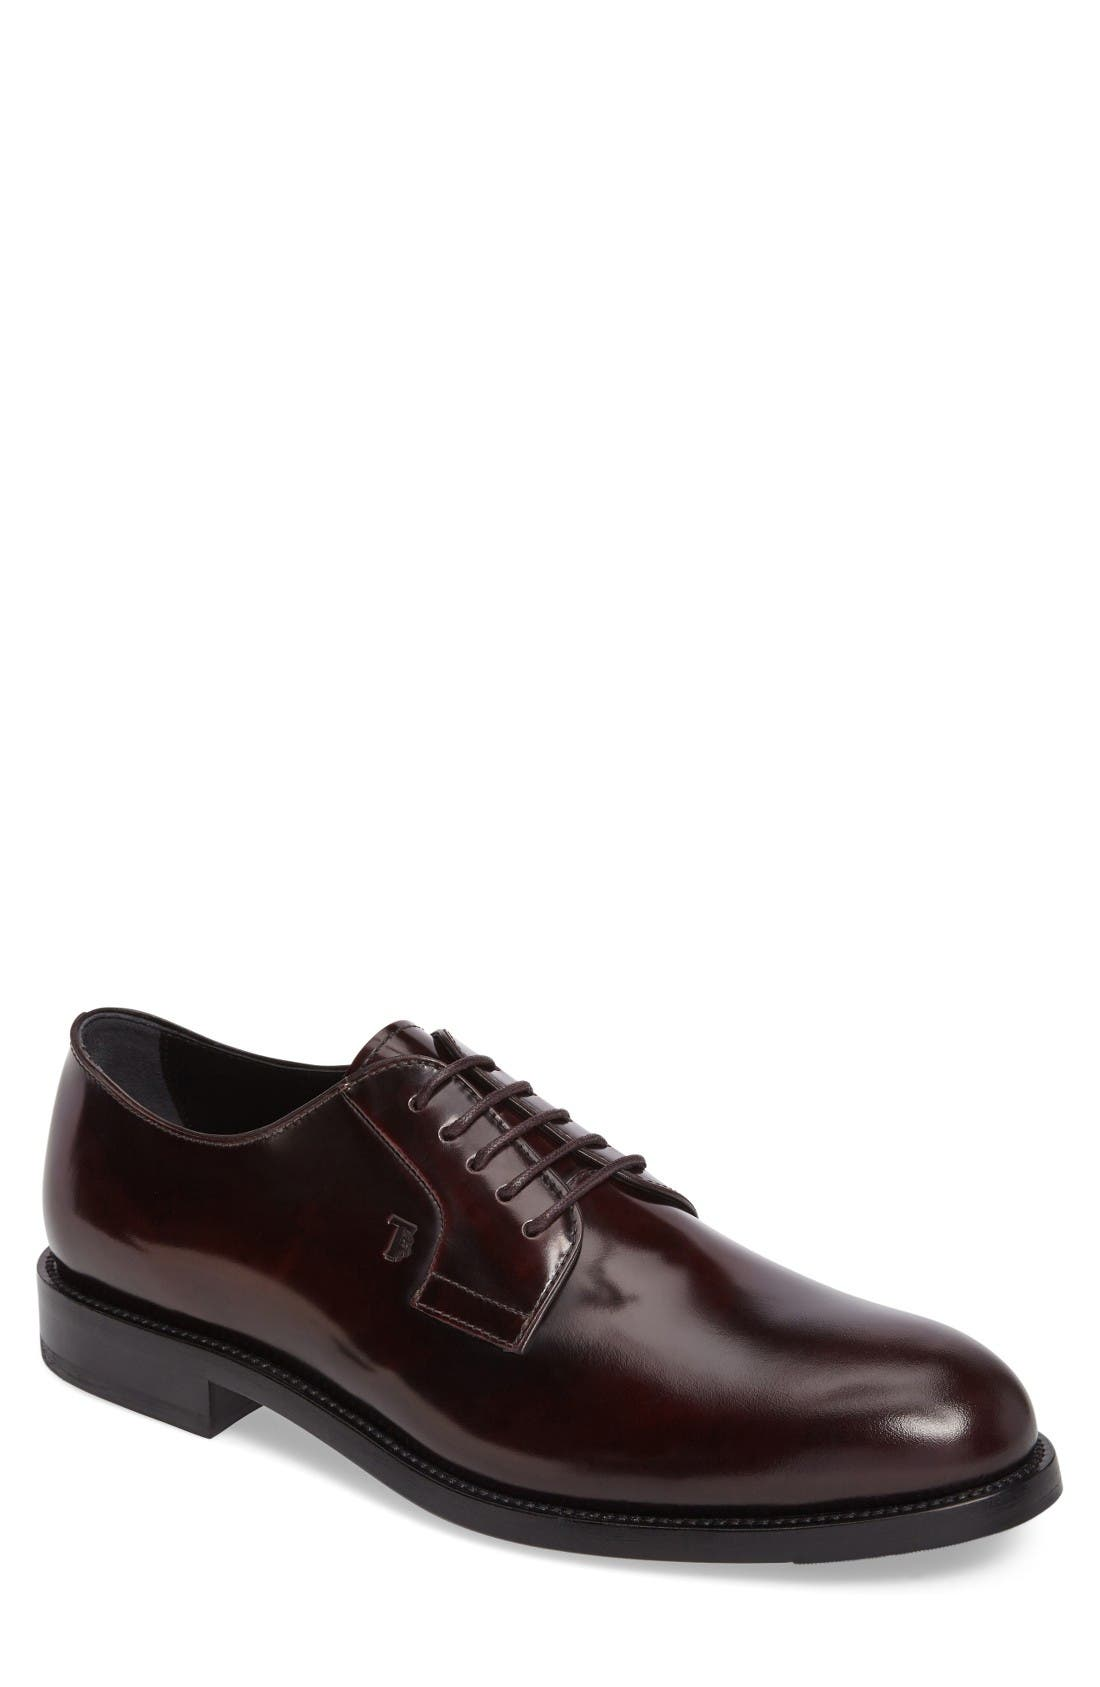 TODS Plain Toe Derby